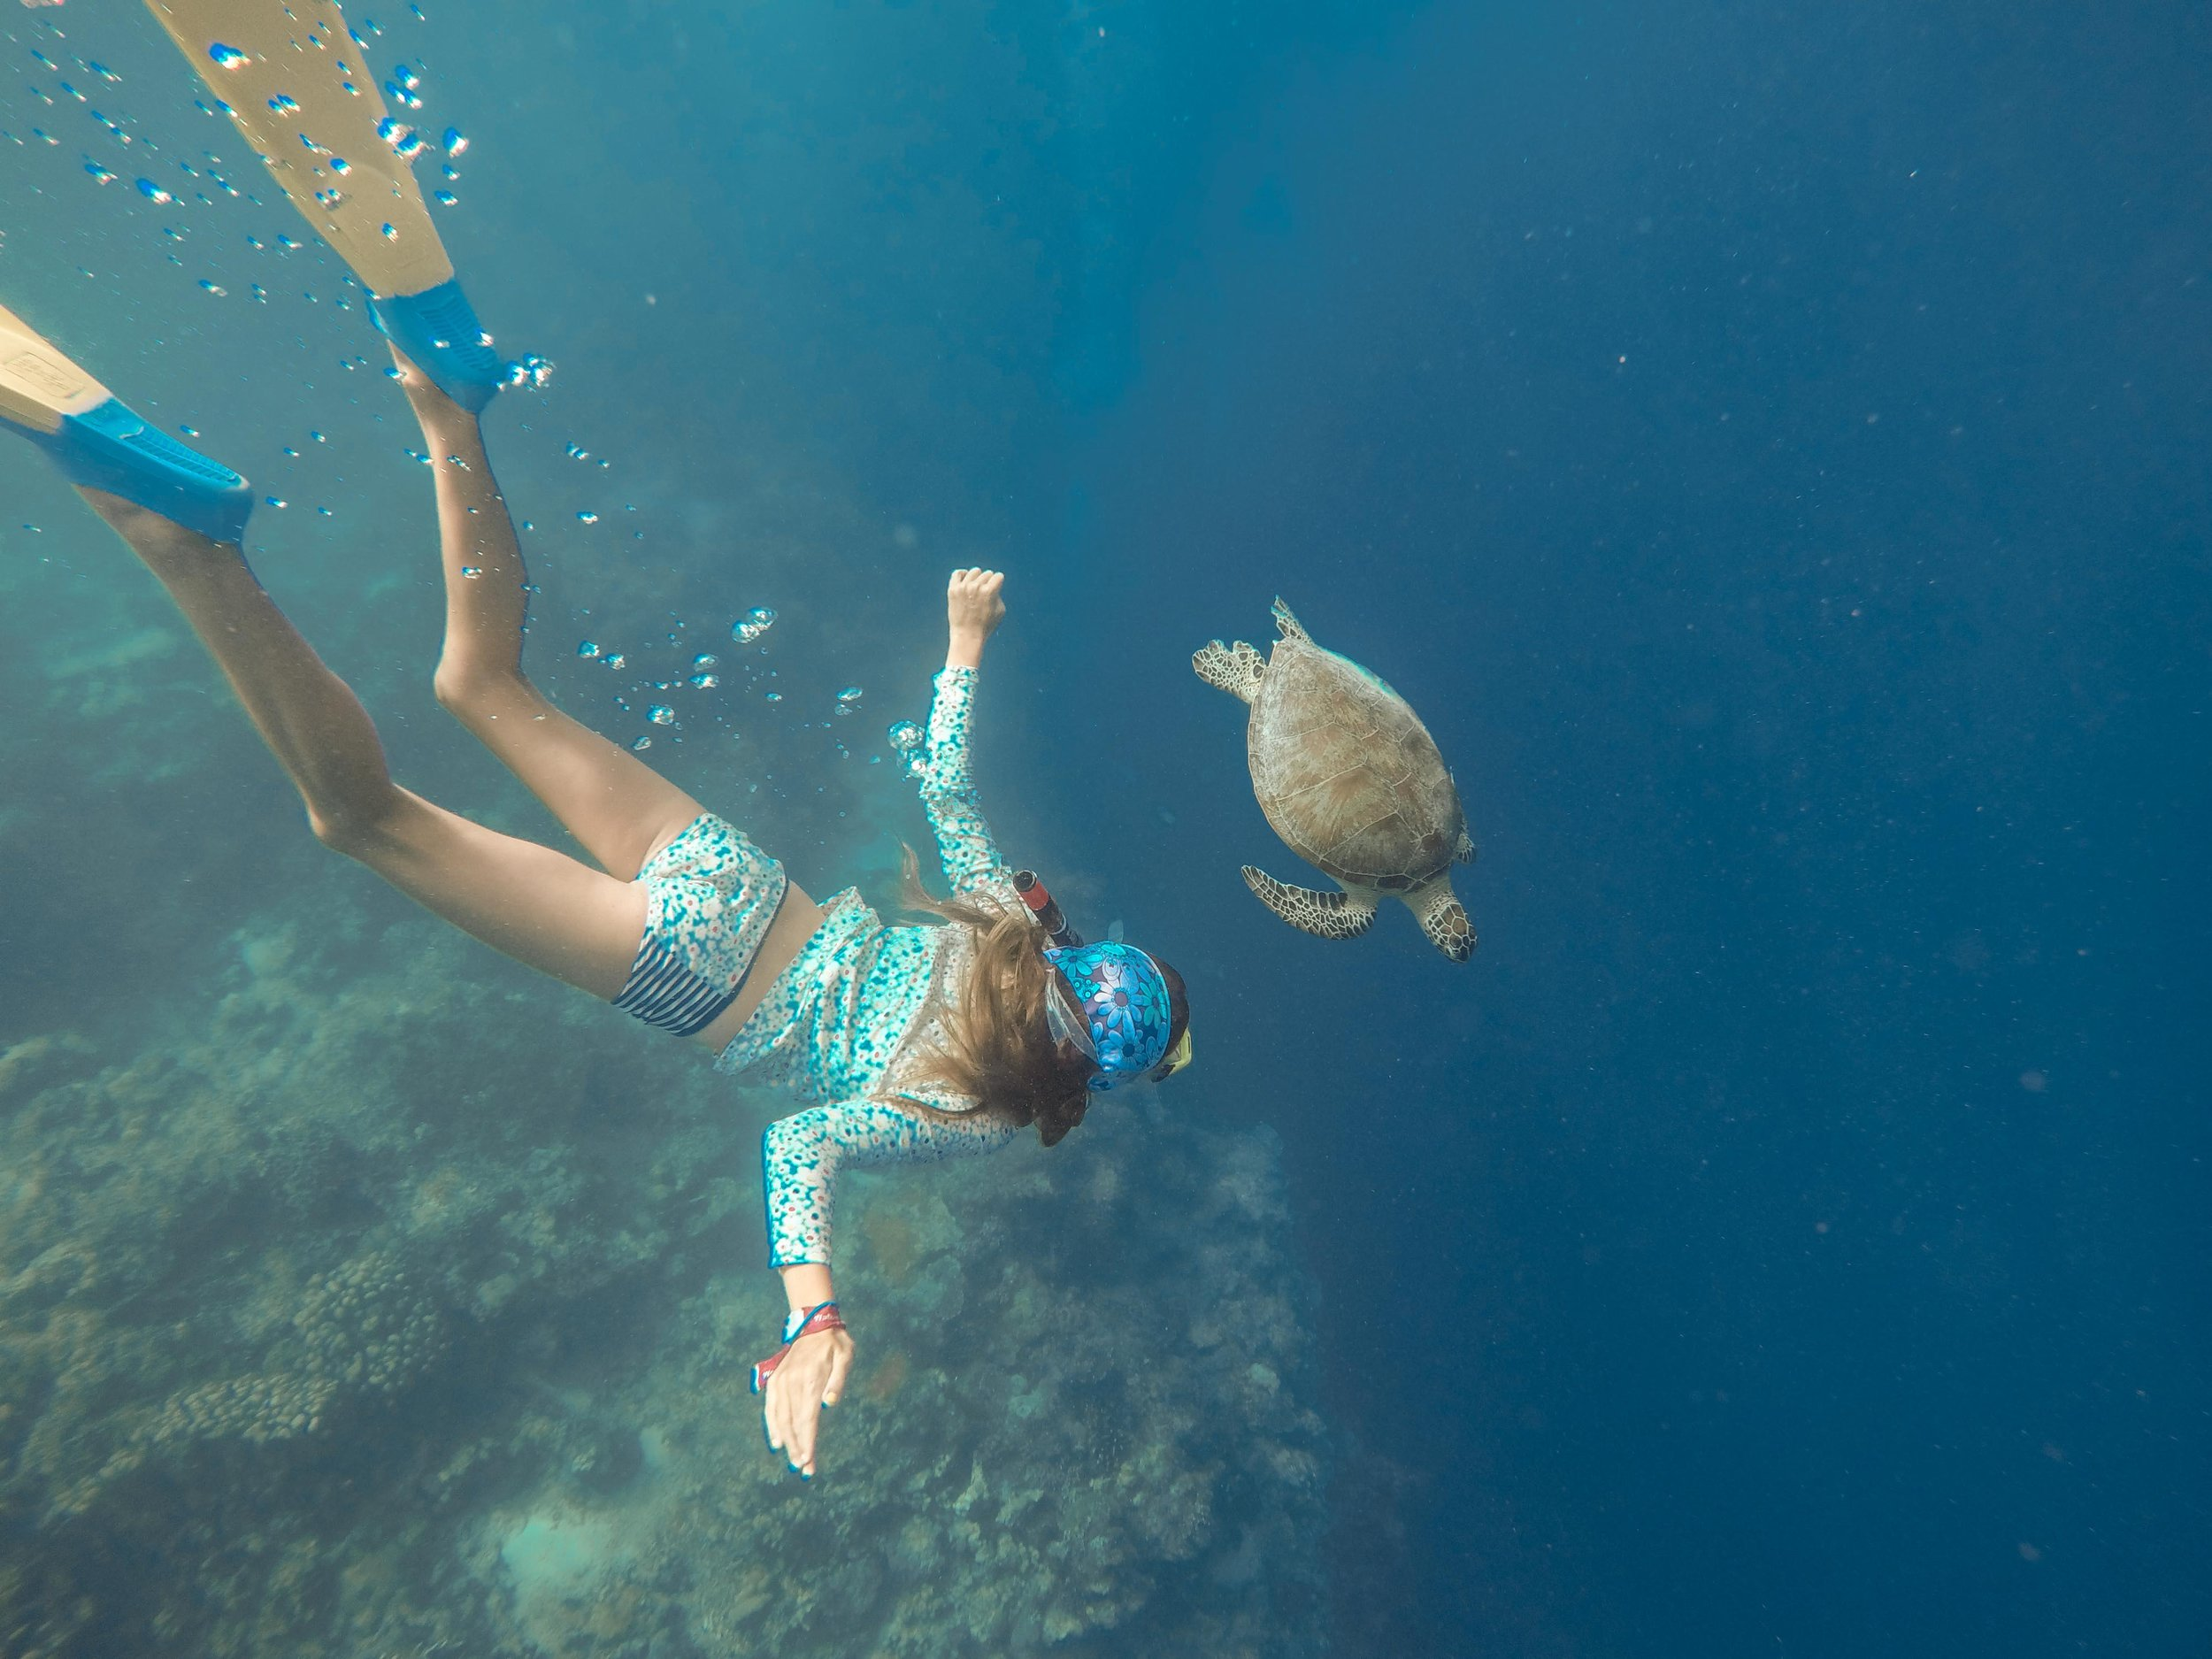 Always chase your dreams, keep the faith, and never give up when things don't go your way. One of the girls goals before we left on this journey, was to see and swim with sea turtles. After 6 months of not being able to locate any along our travels, we finally struck gold in Malaysia while visiting the amazing Mataking Island. Here Taylor goes free diving for a closer look at her new favorite animal.